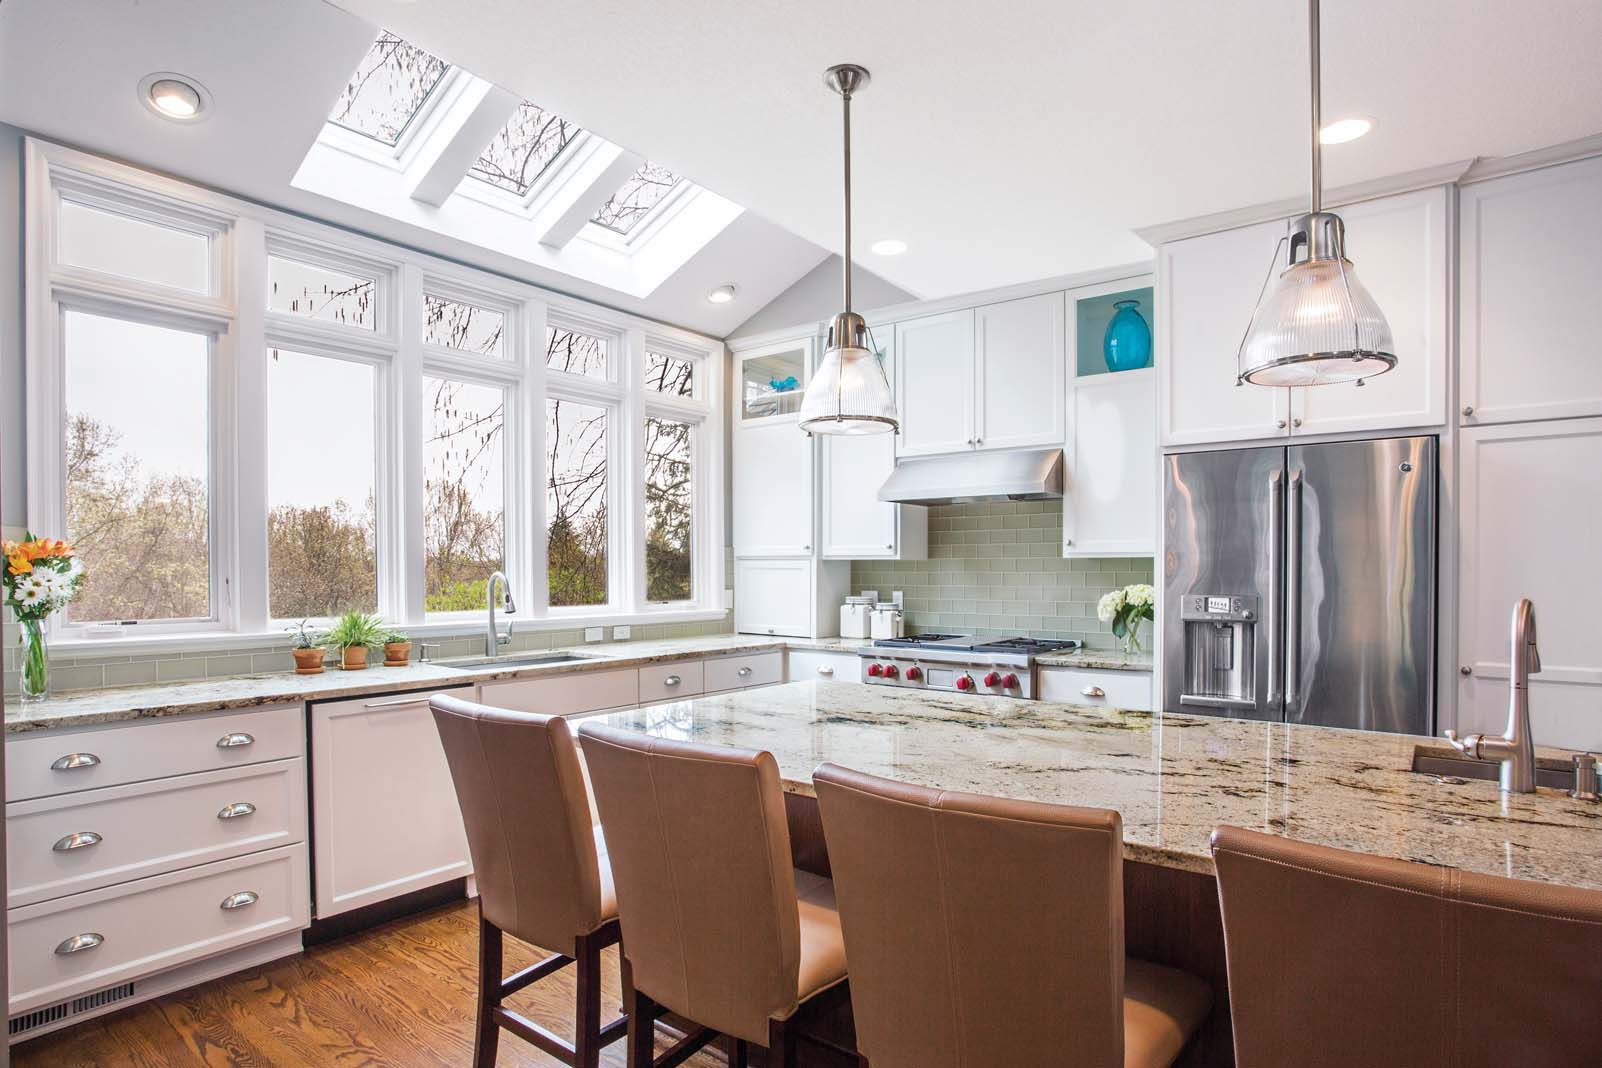 Natural Light   Midwest Home